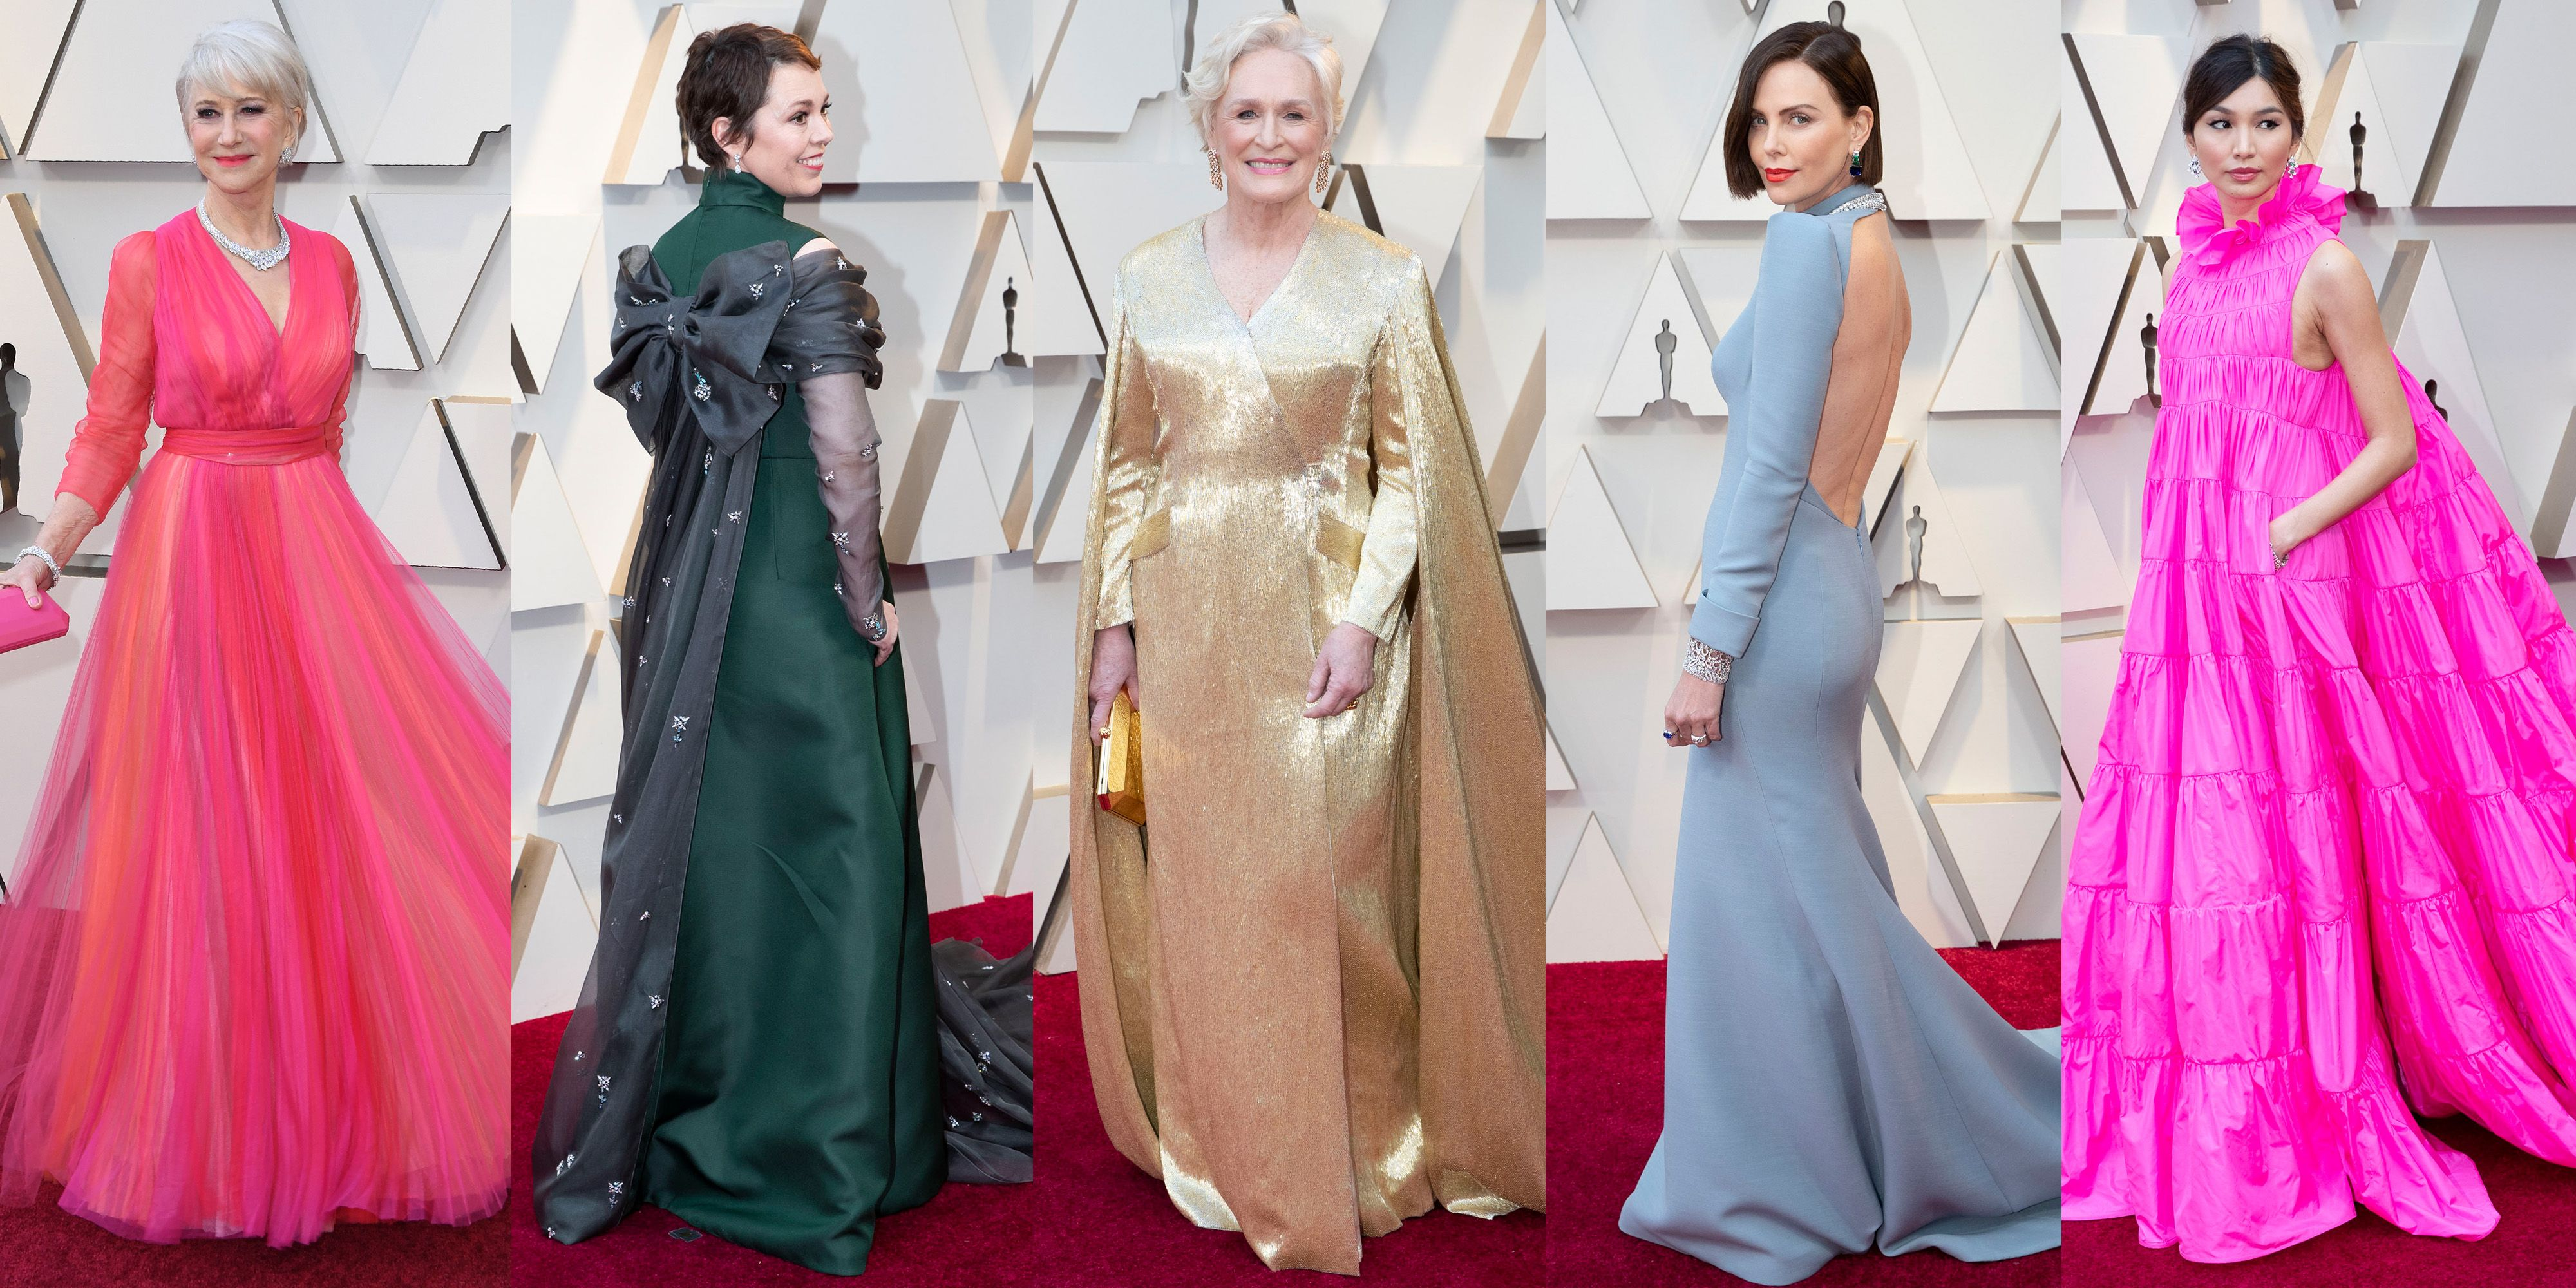 The best dressed moments from the 2019 Academy Awards.